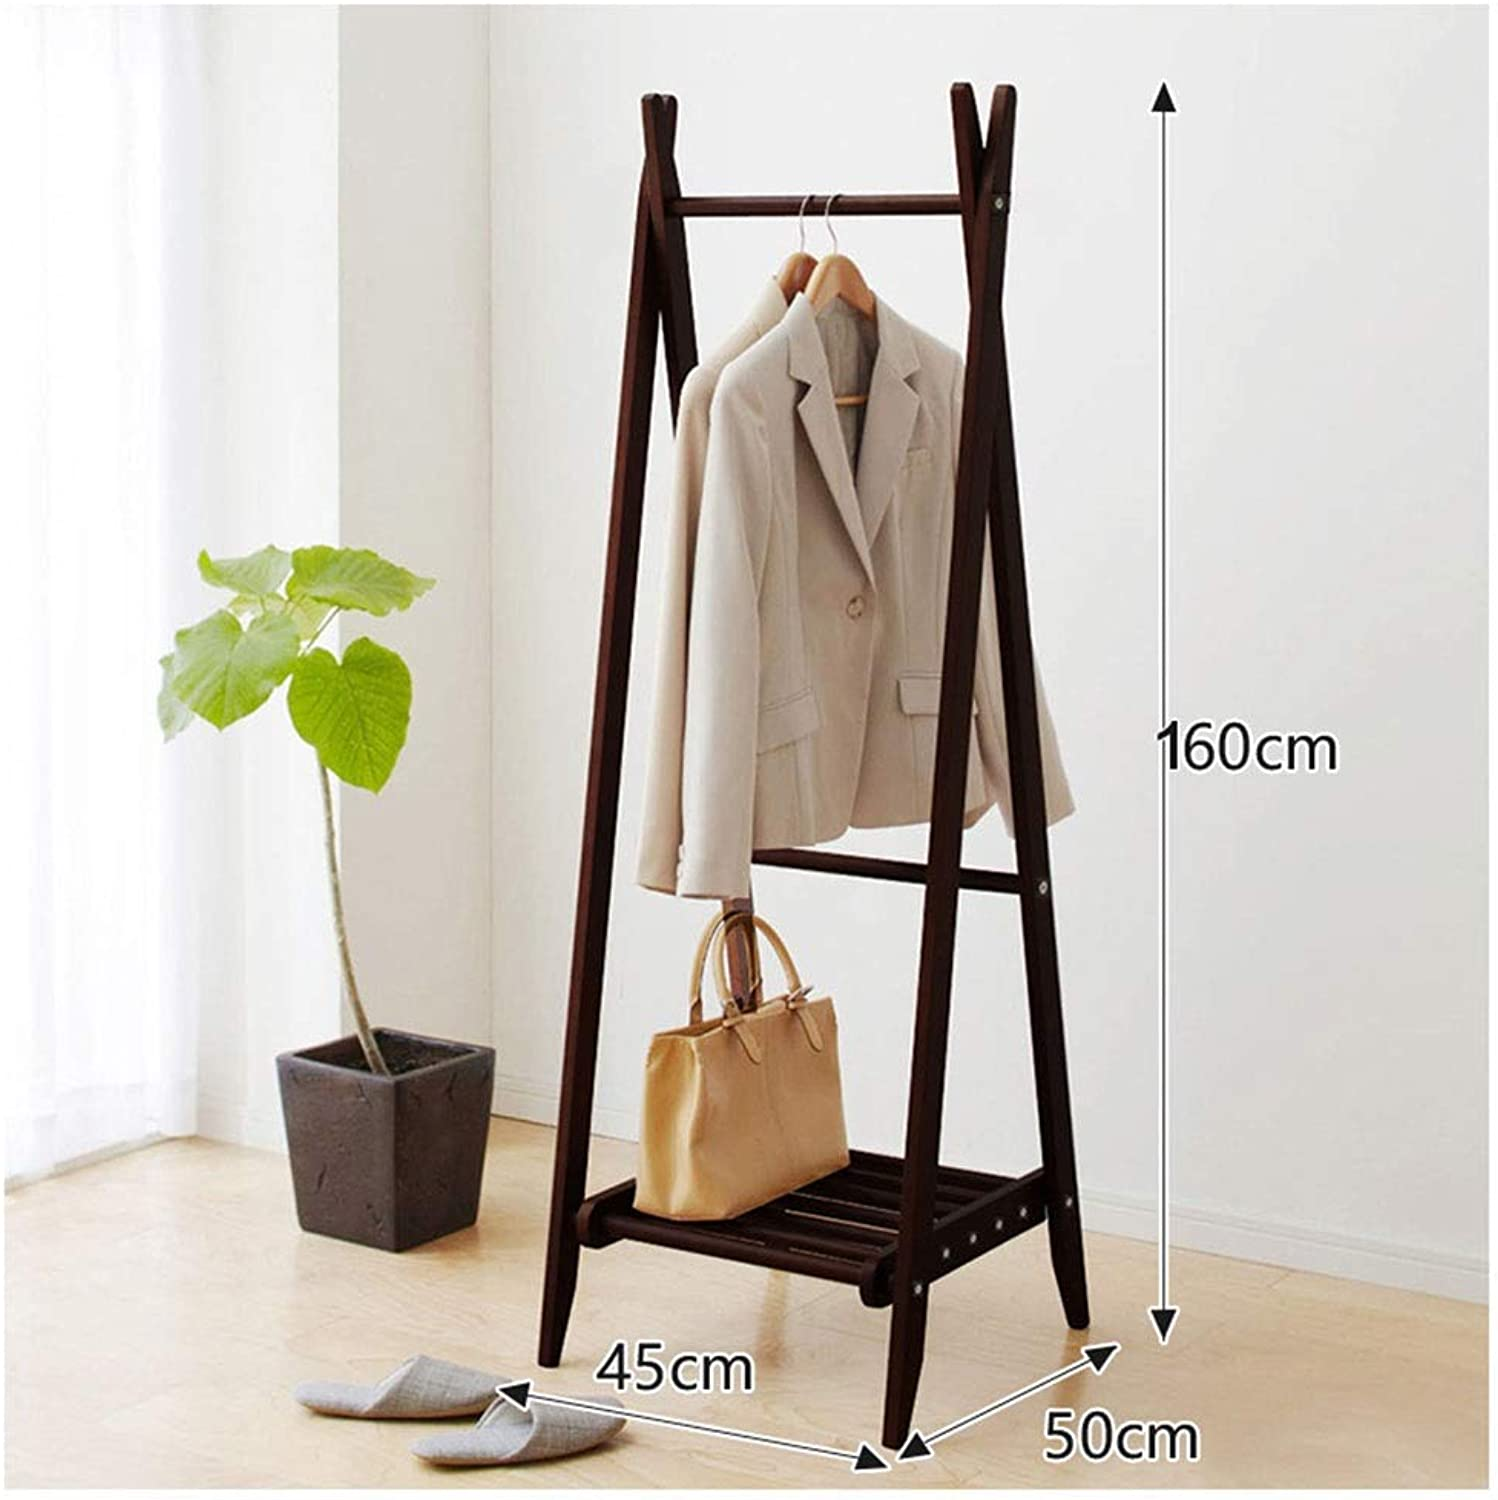 WYQSZ Coat Rack-Floor Solid Wood Simple Coat Rack Hanger Wall Hanging Bedroom Hanger Clothes Rack Floor Rack Exquisite Coat Rack - Coat Rack 8563 (color   A)